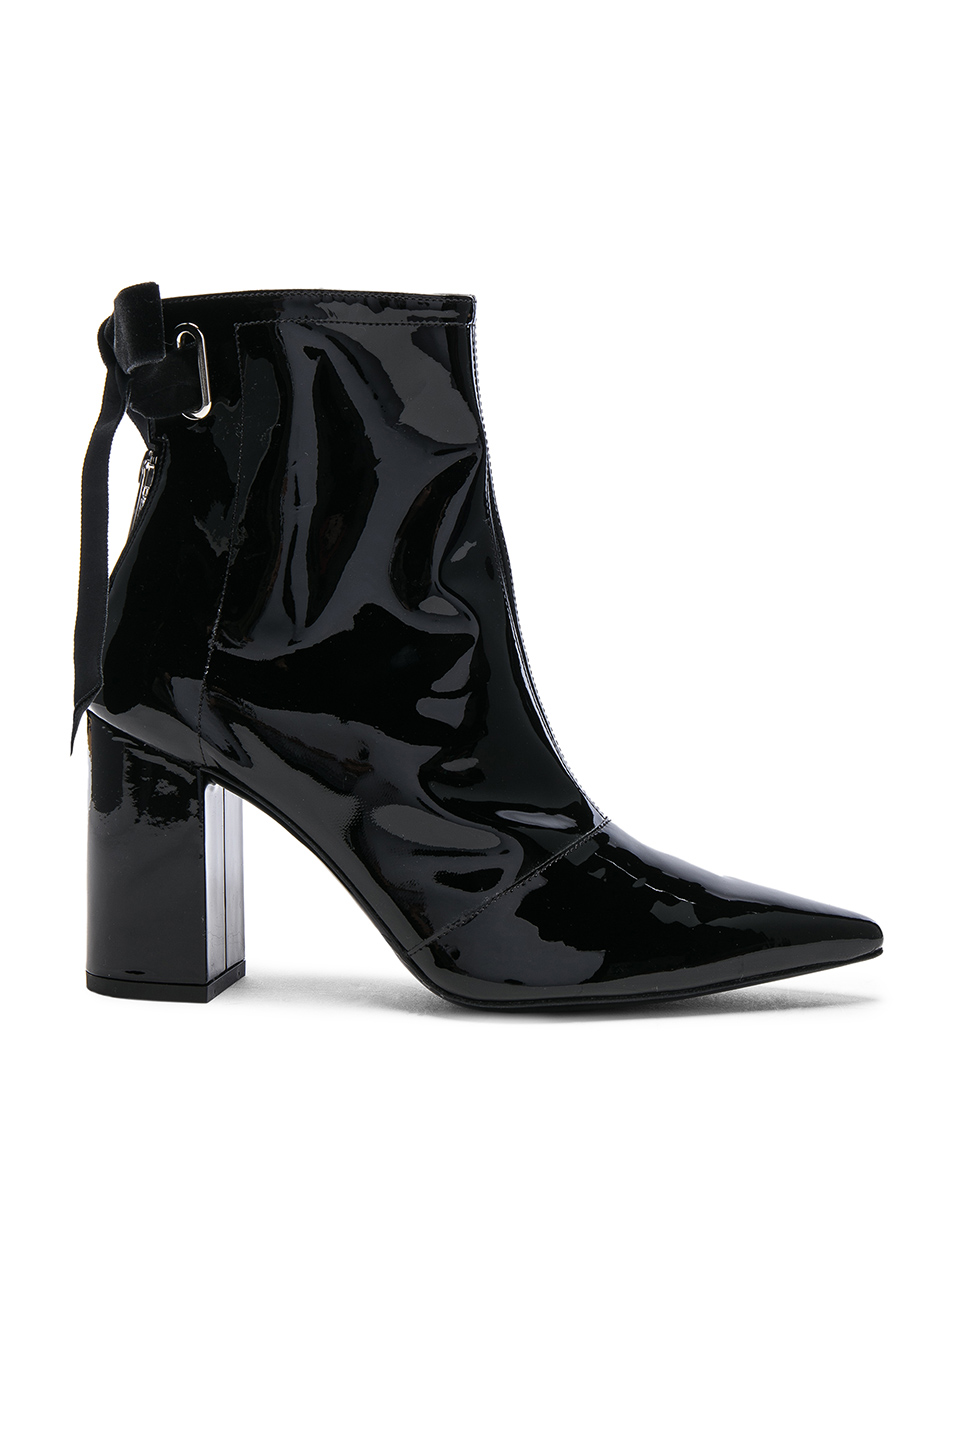 1a2f01de2fb X Clergerie Karli Patent Leather Ankle Boots in Black